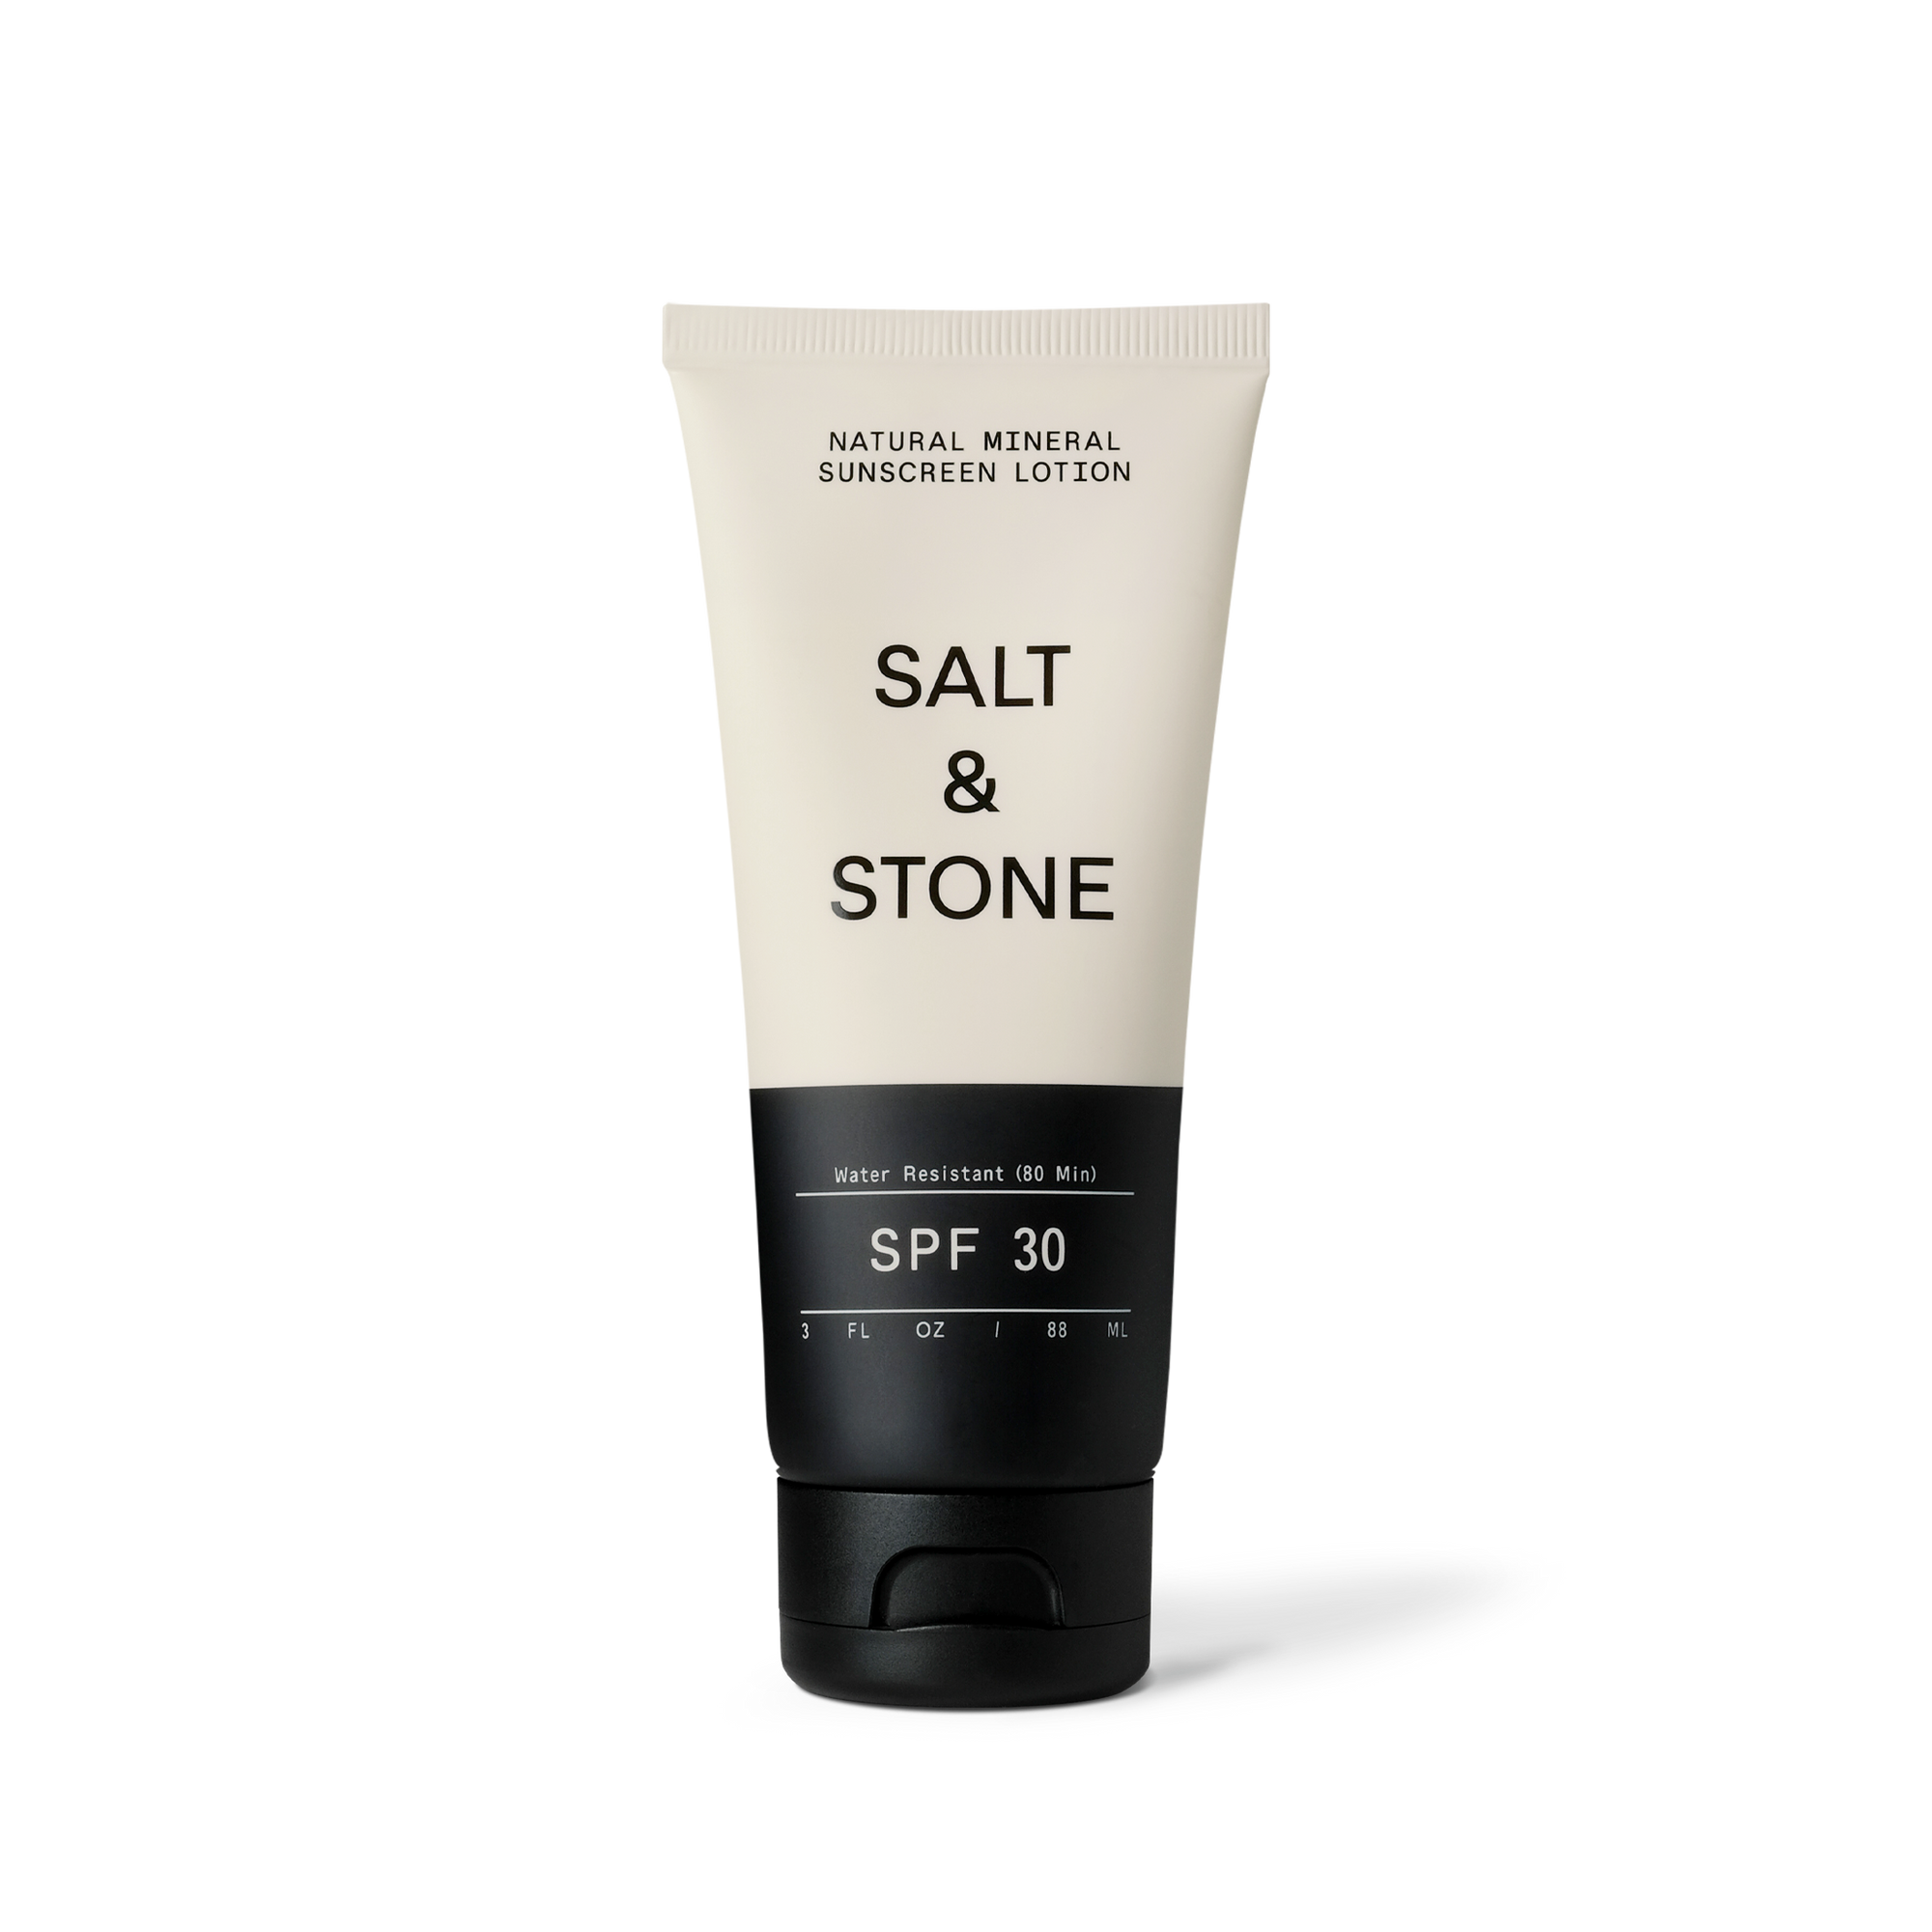 Salt & Stone sunscreen with half of the bottle white with black font and the lower half down to the cap is in black with white font.